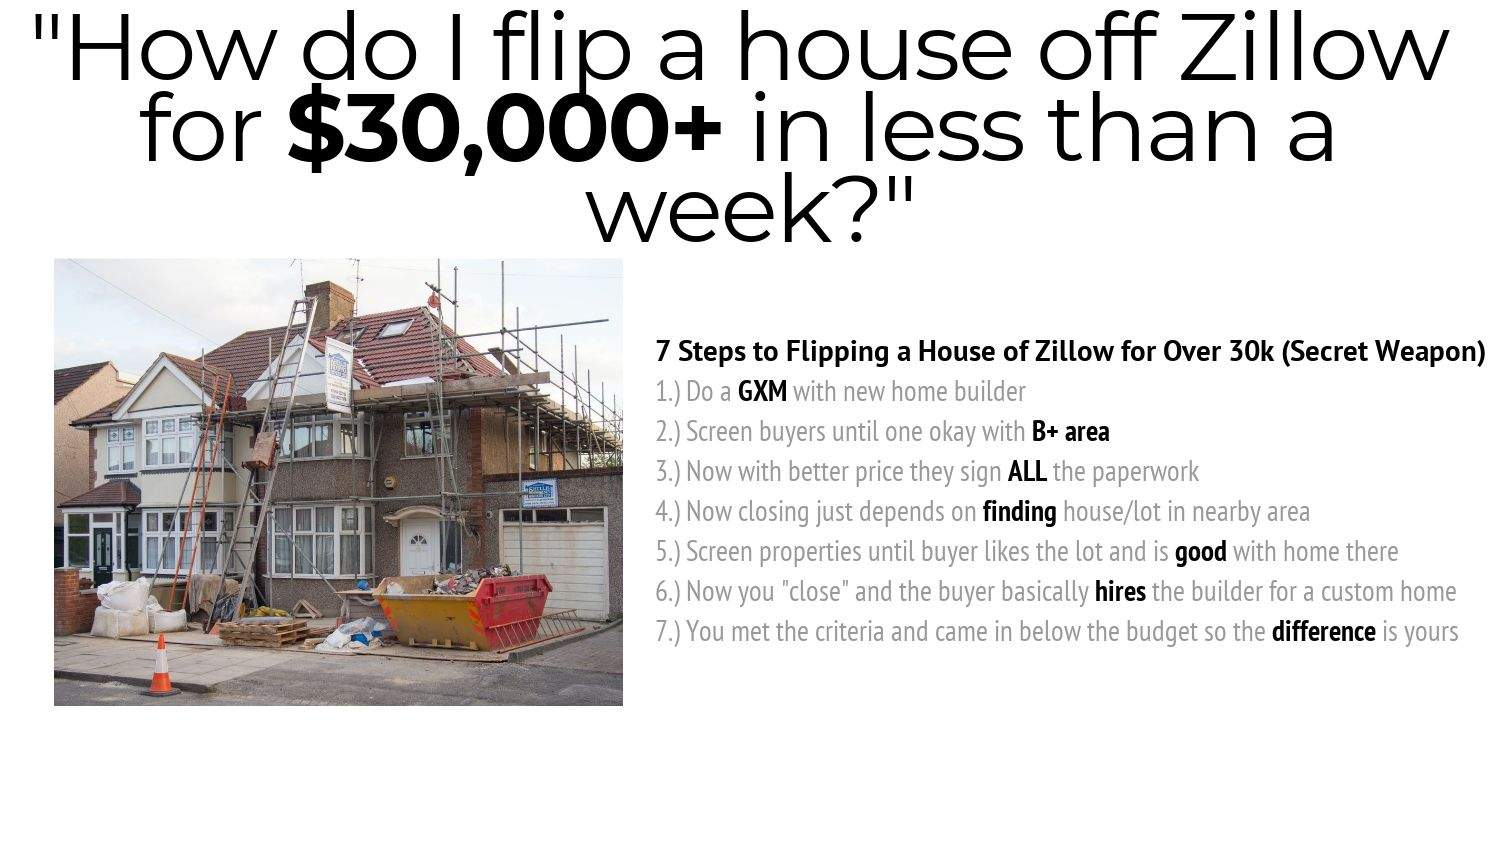 7 Steps to Flipping Houses off Zillow for 30k in under 30 days